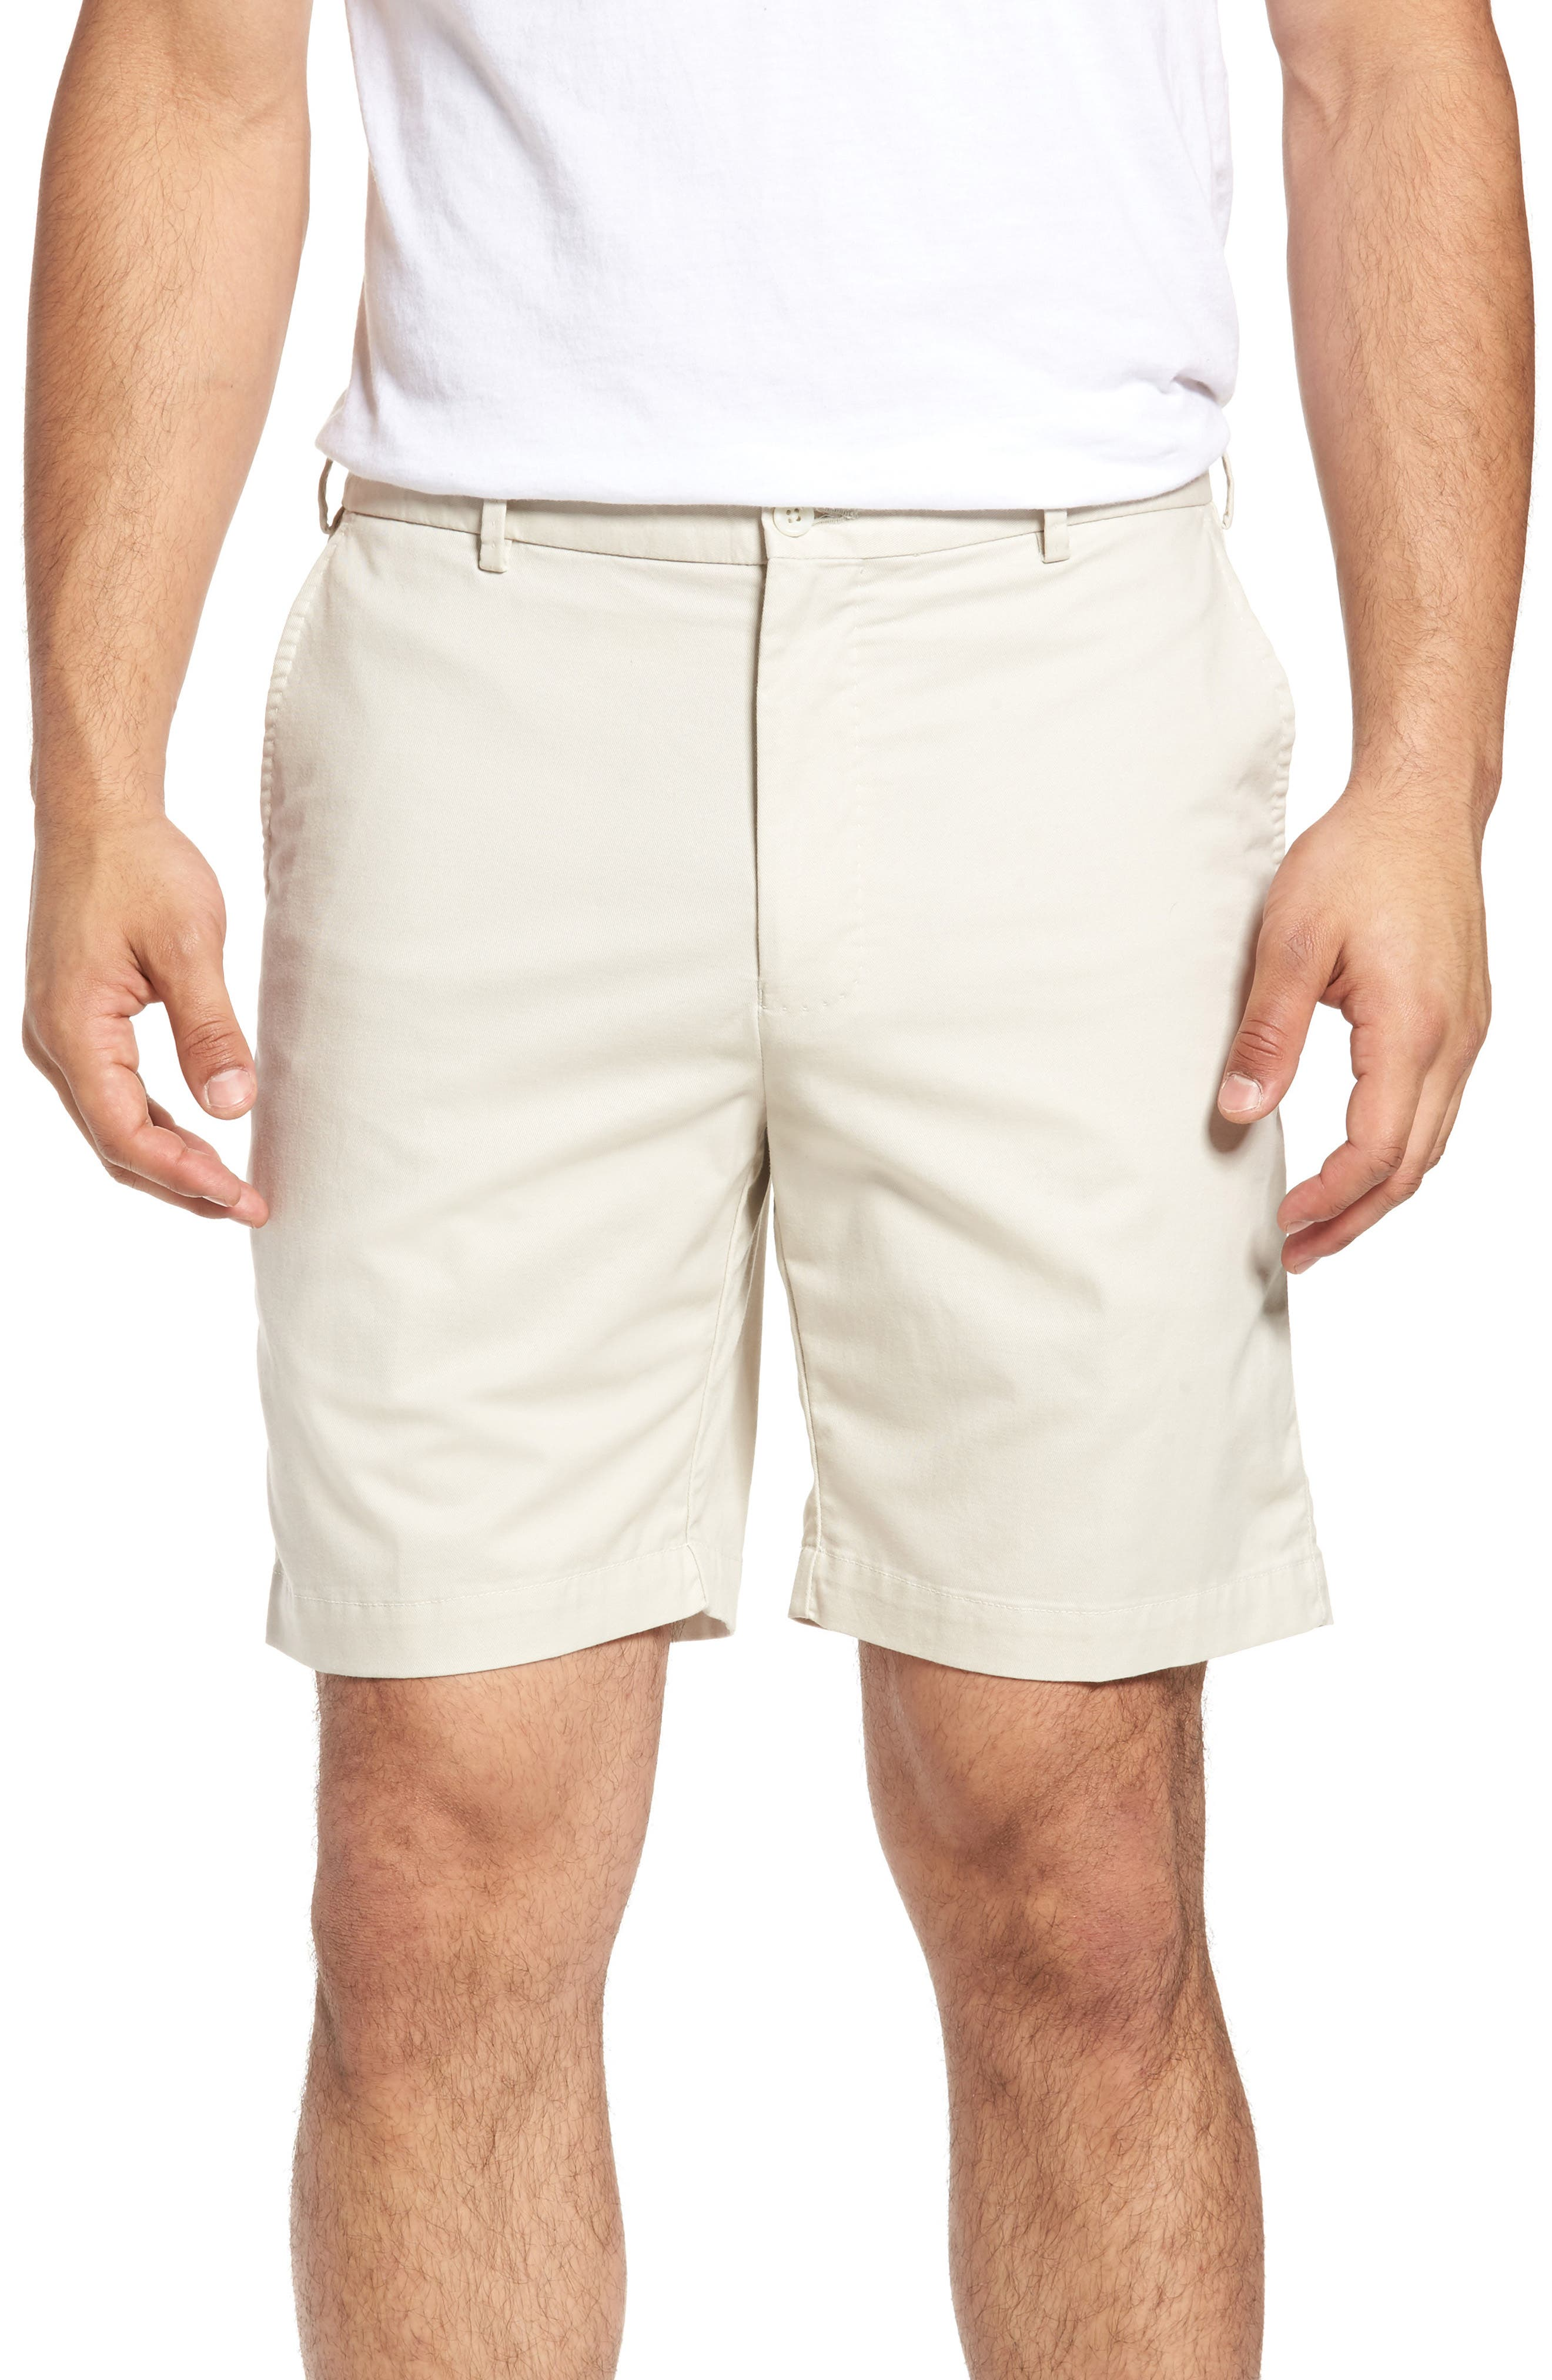 Main Image - Peter Millar Soft Touch Twill Shorts (Tall)